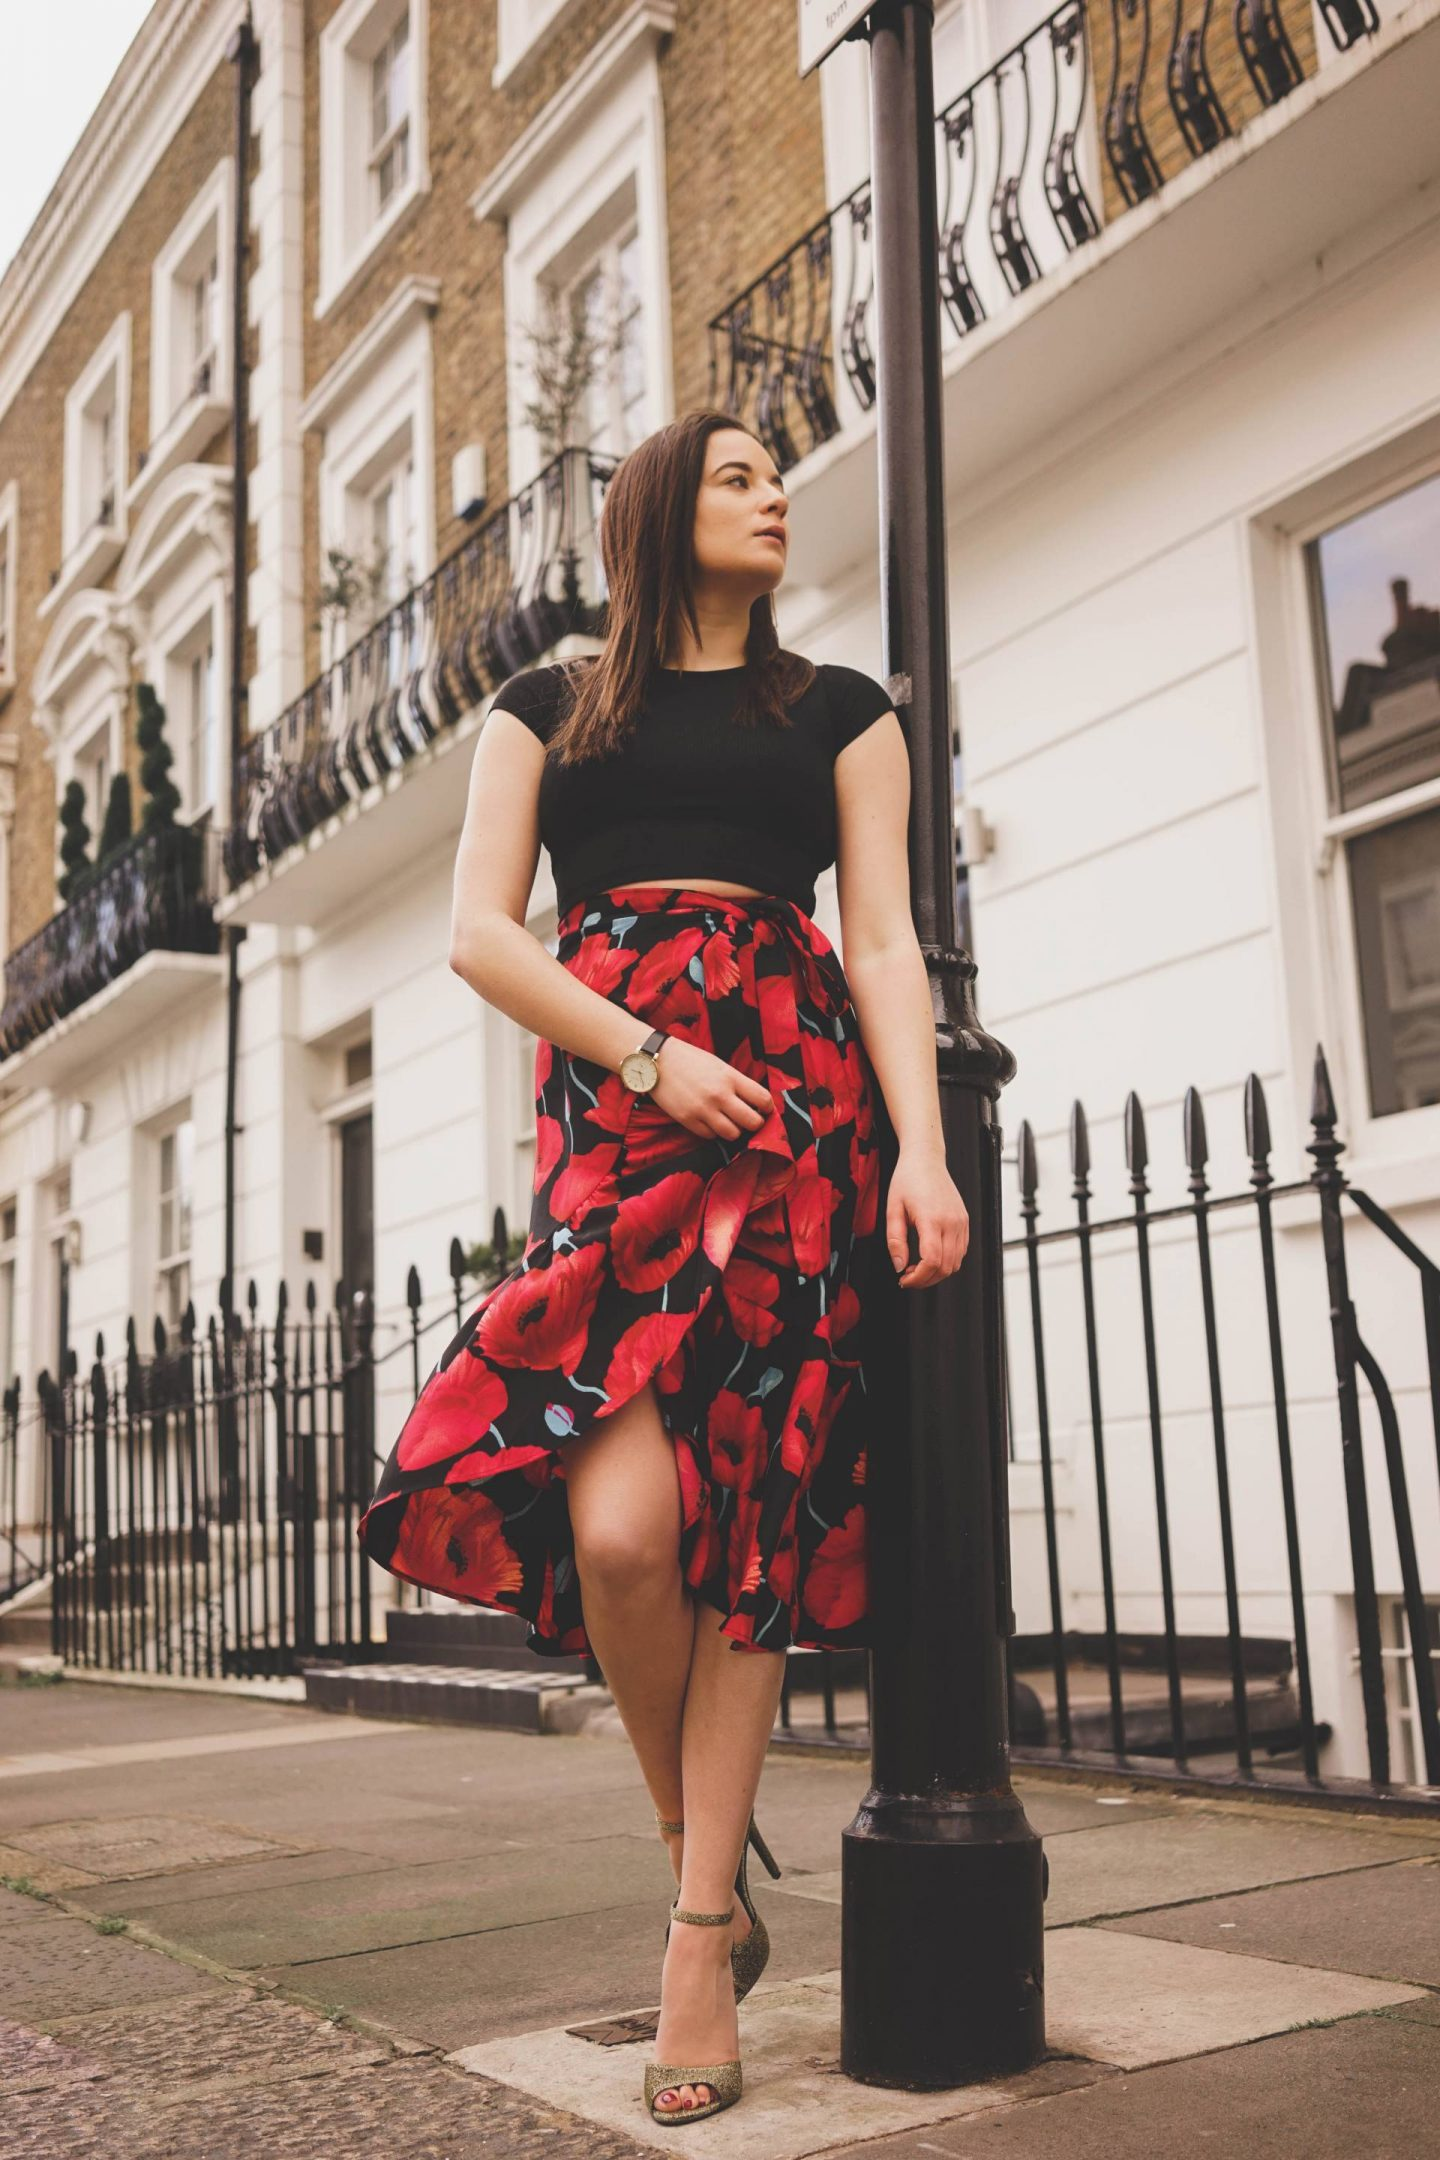 London Sloane Square outfit photoshoot